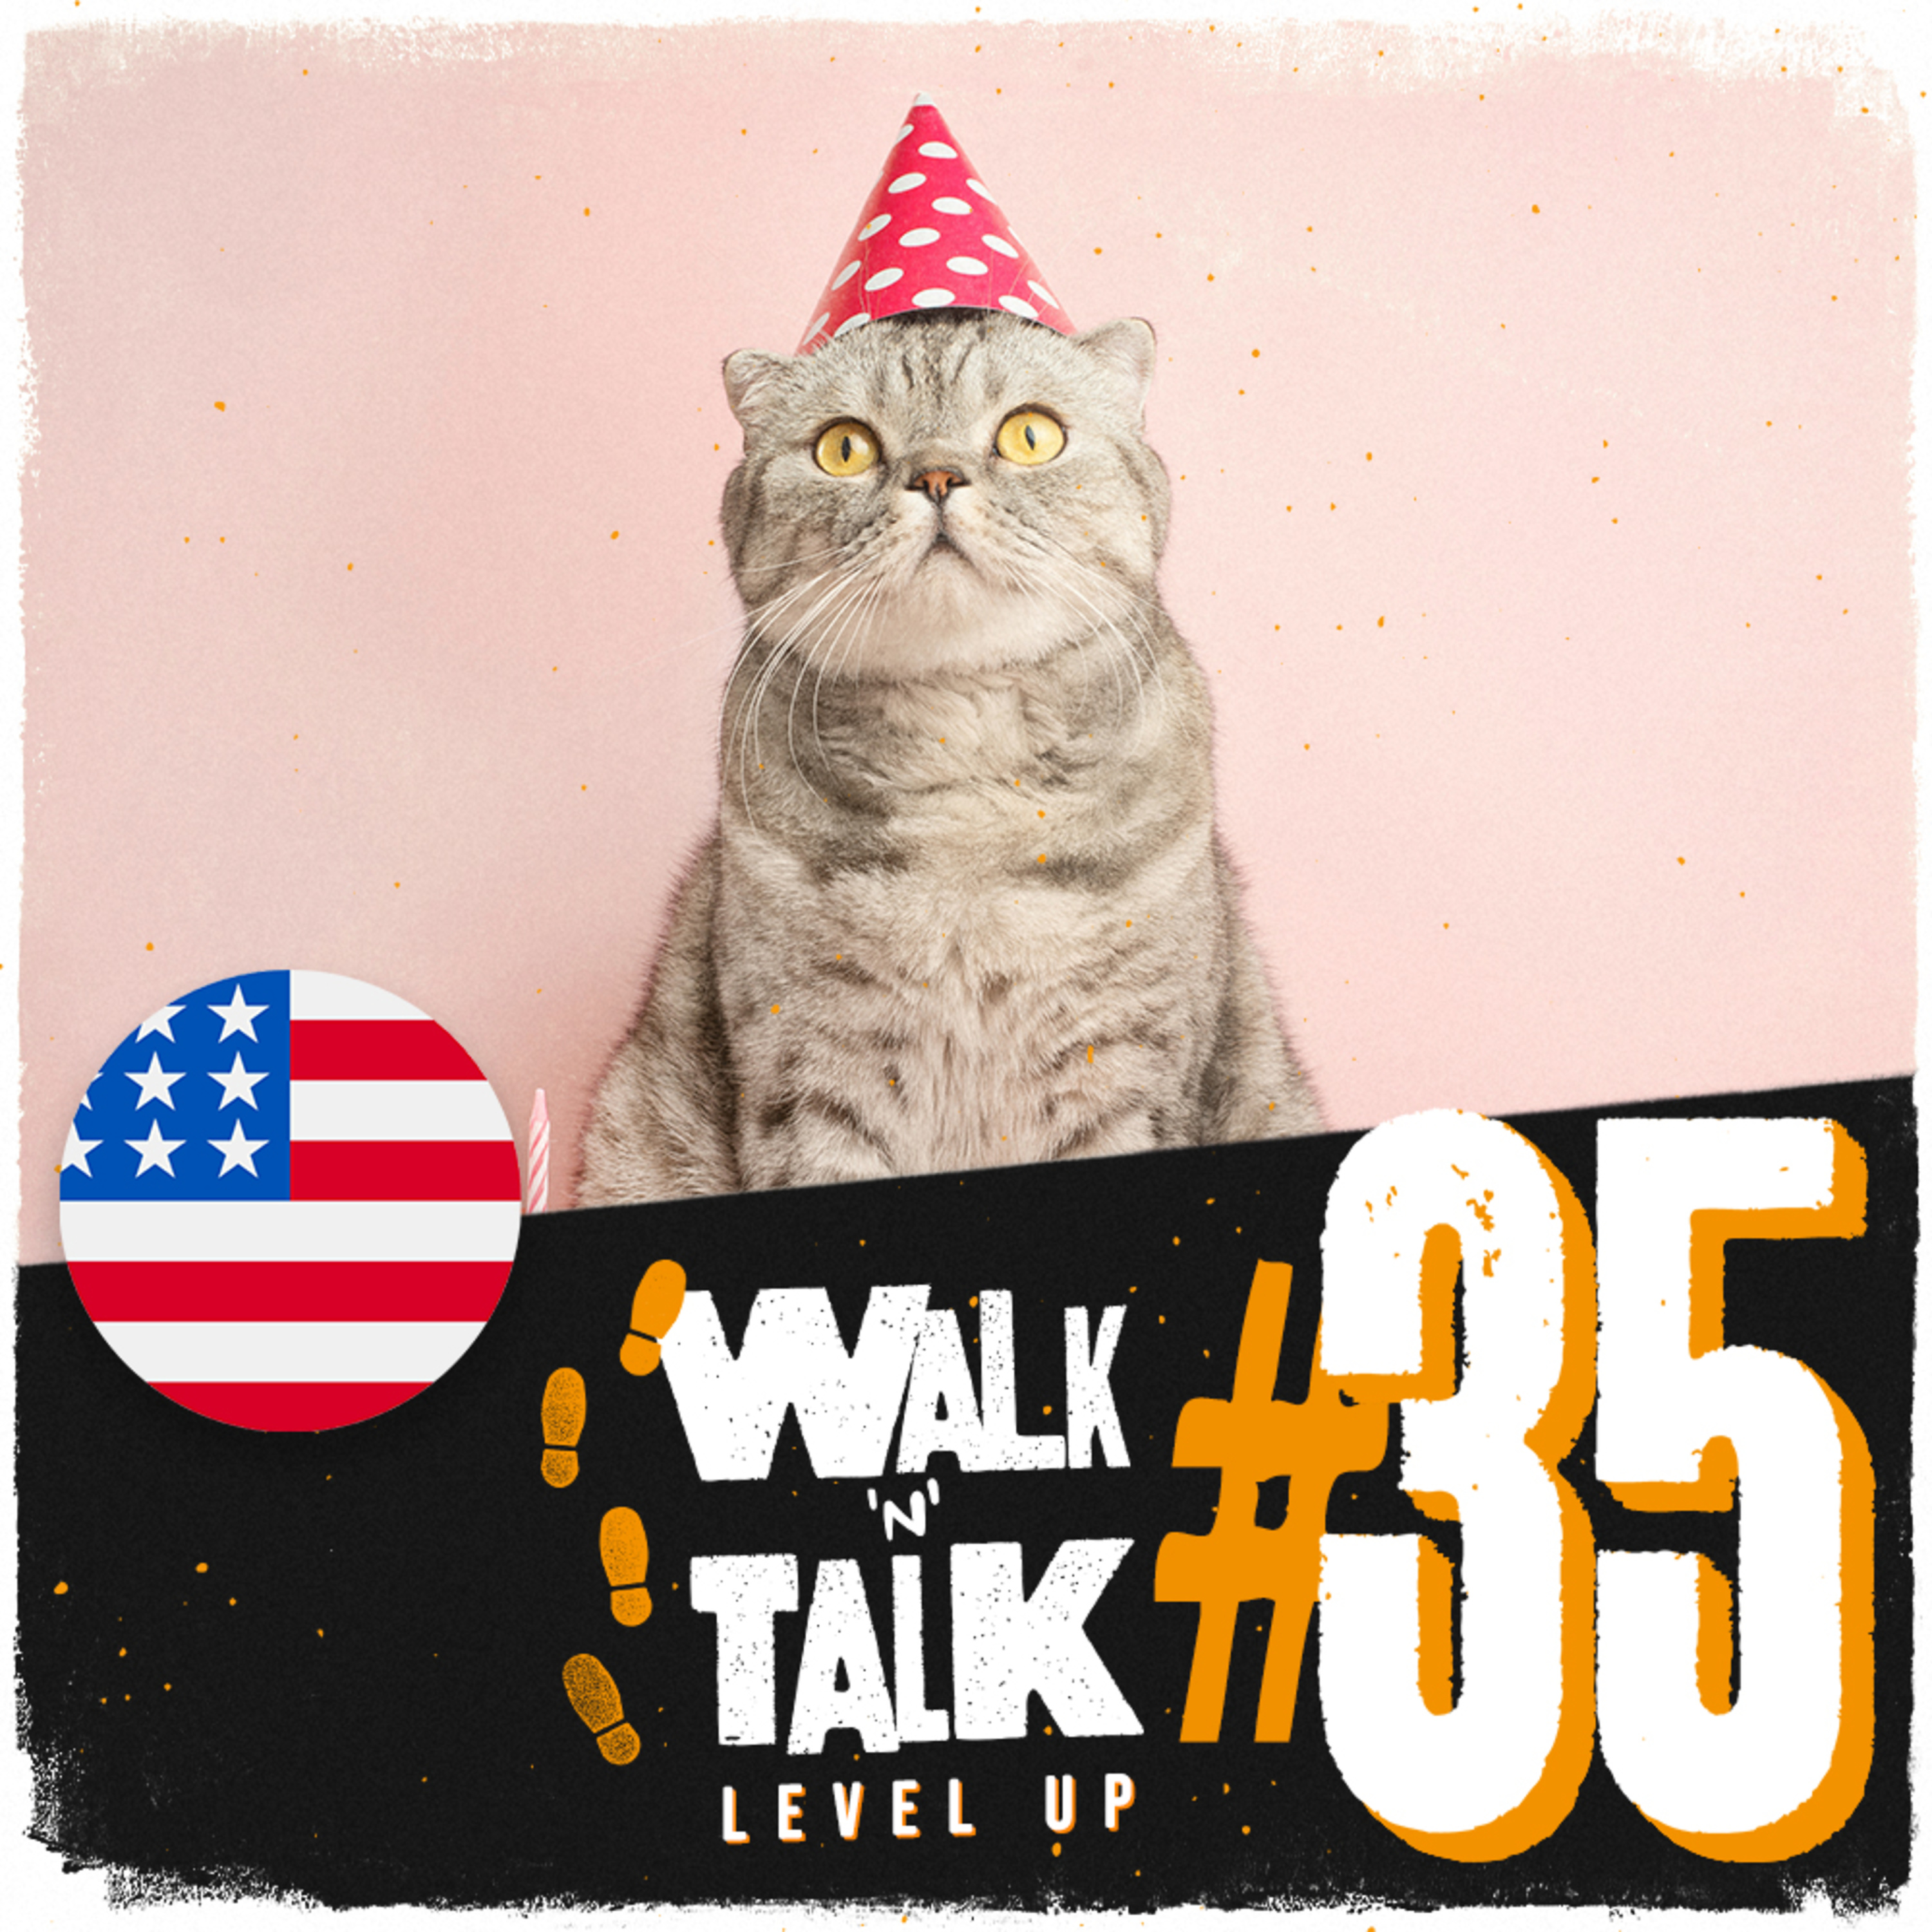 Walk 'n' Talk Level Up #35 - Cats have parties too!